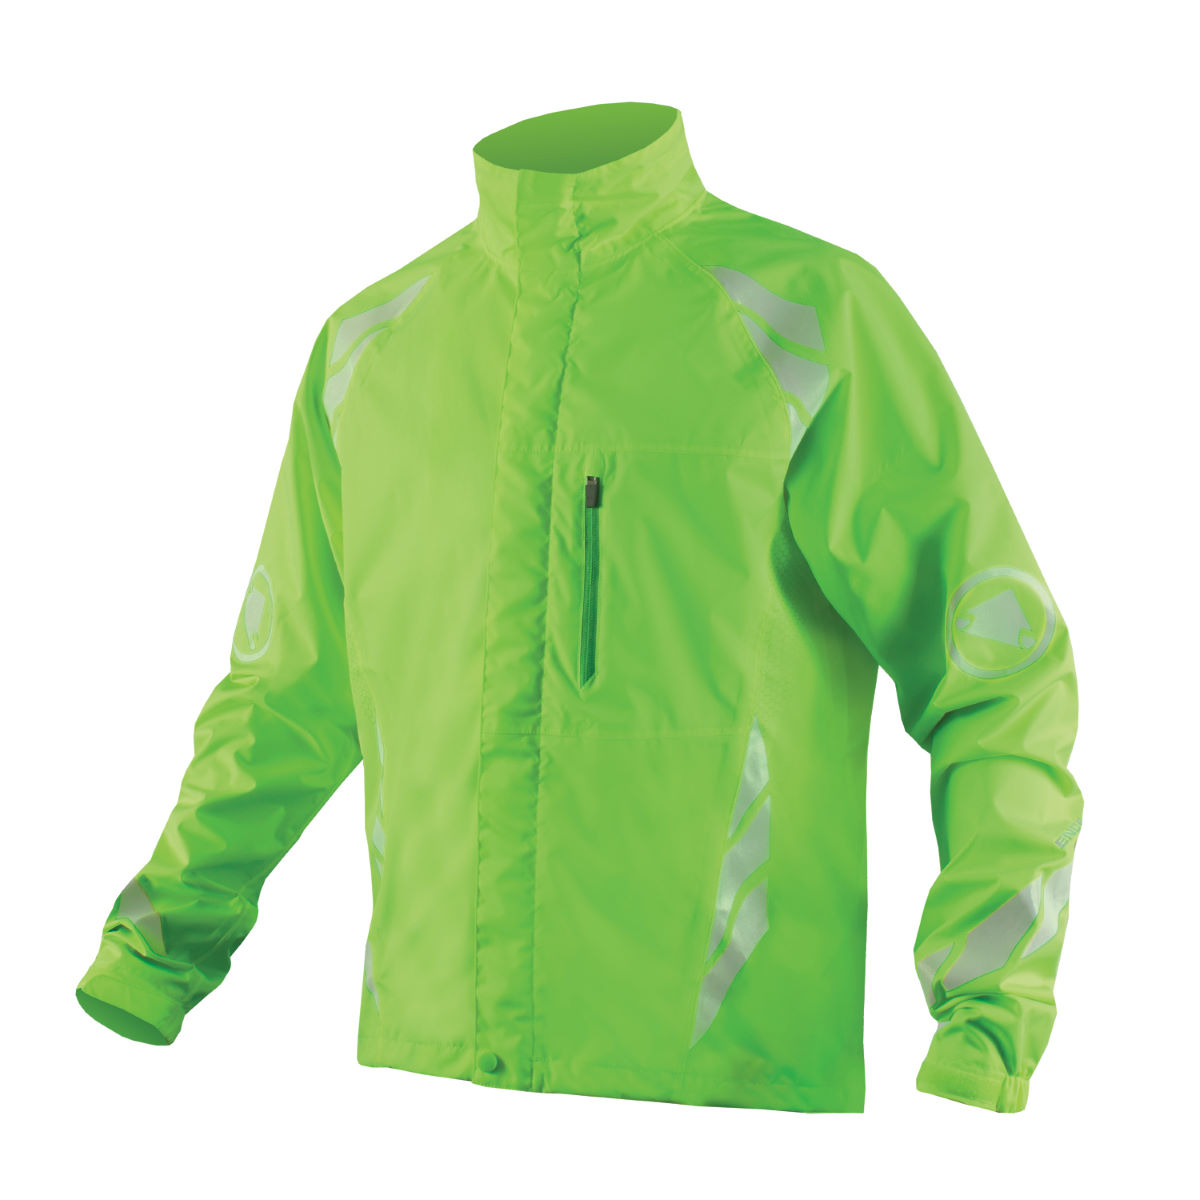 Endura Luminite DL Jacket - Medium Green | Cycling Waterproof Jackets